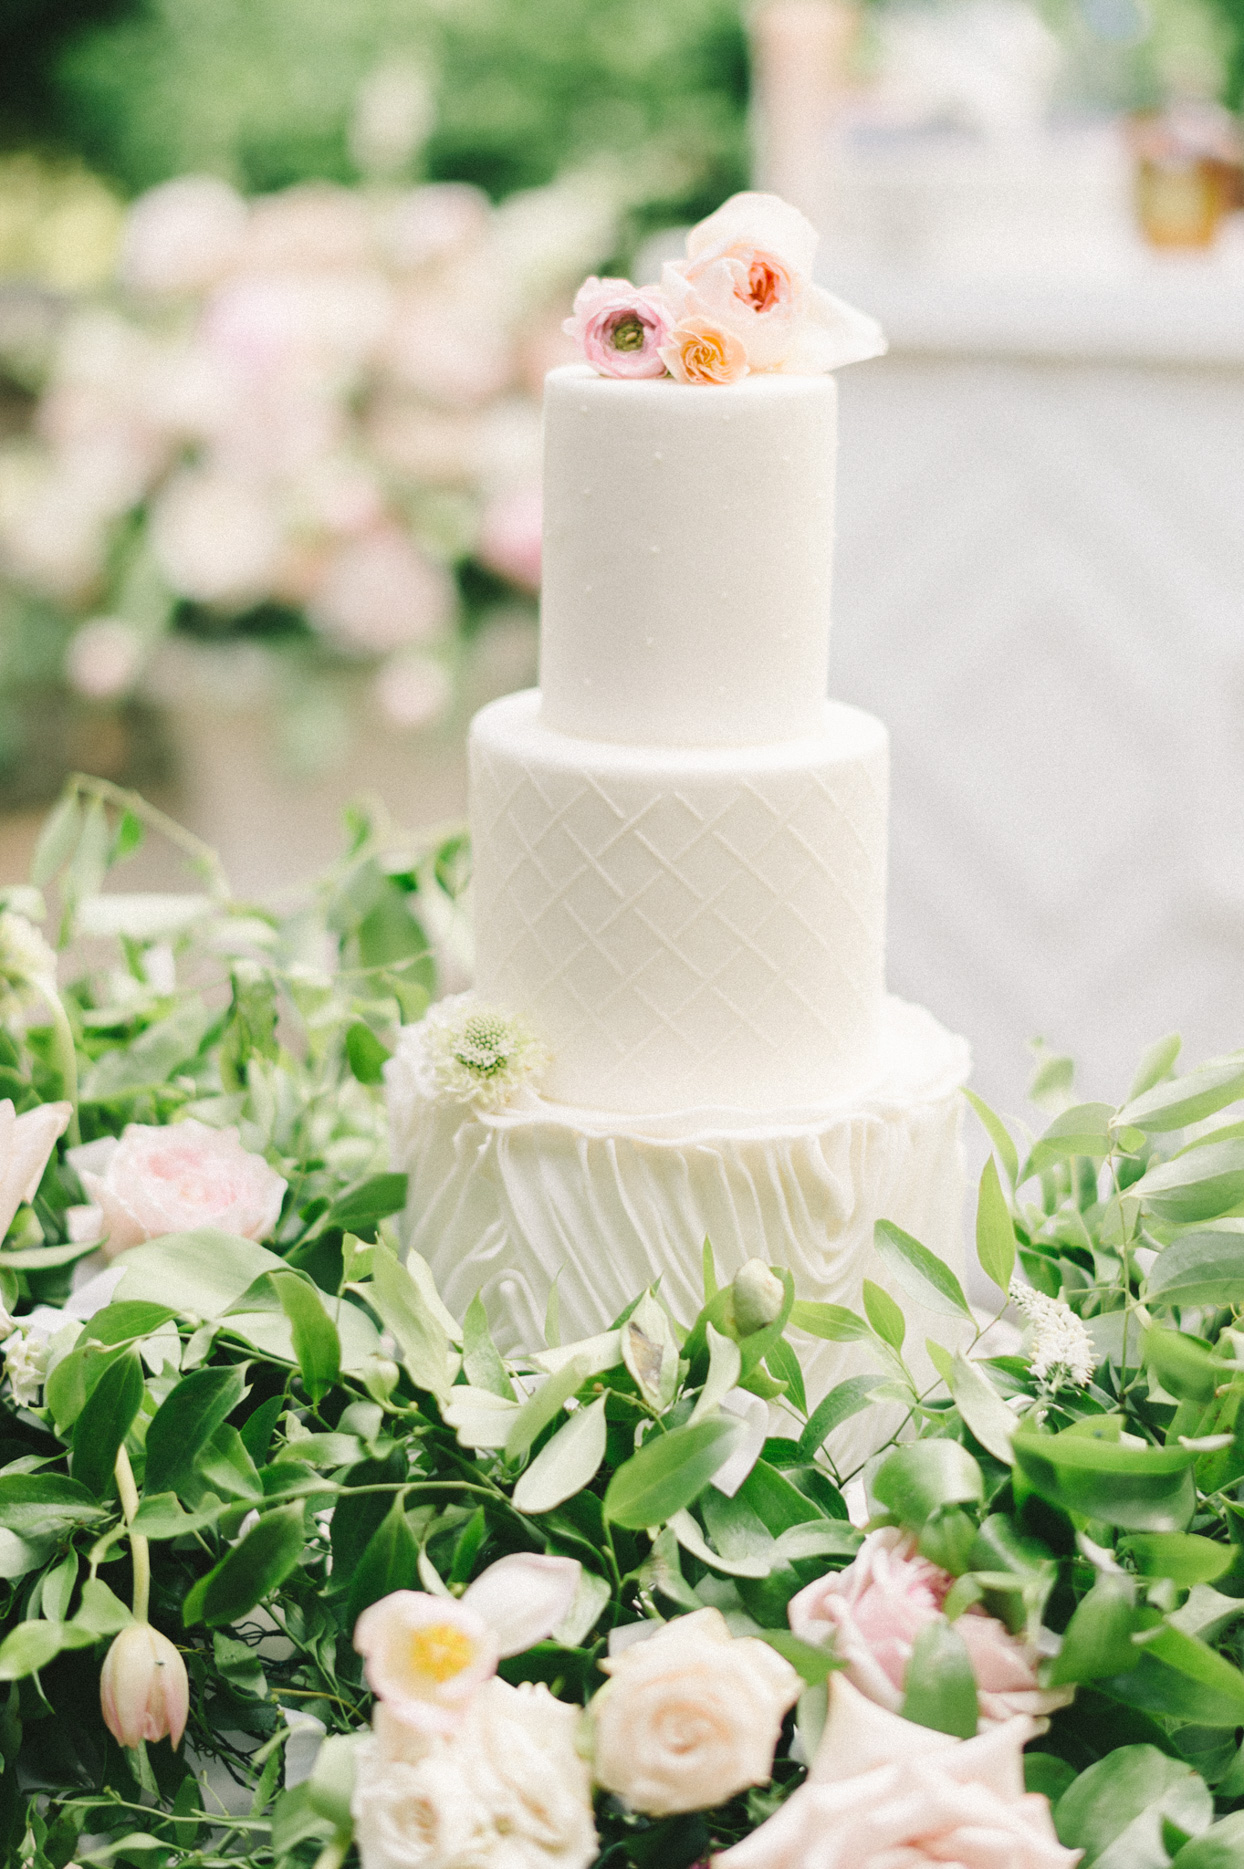 three tier white wedding cake with flowers and greenery